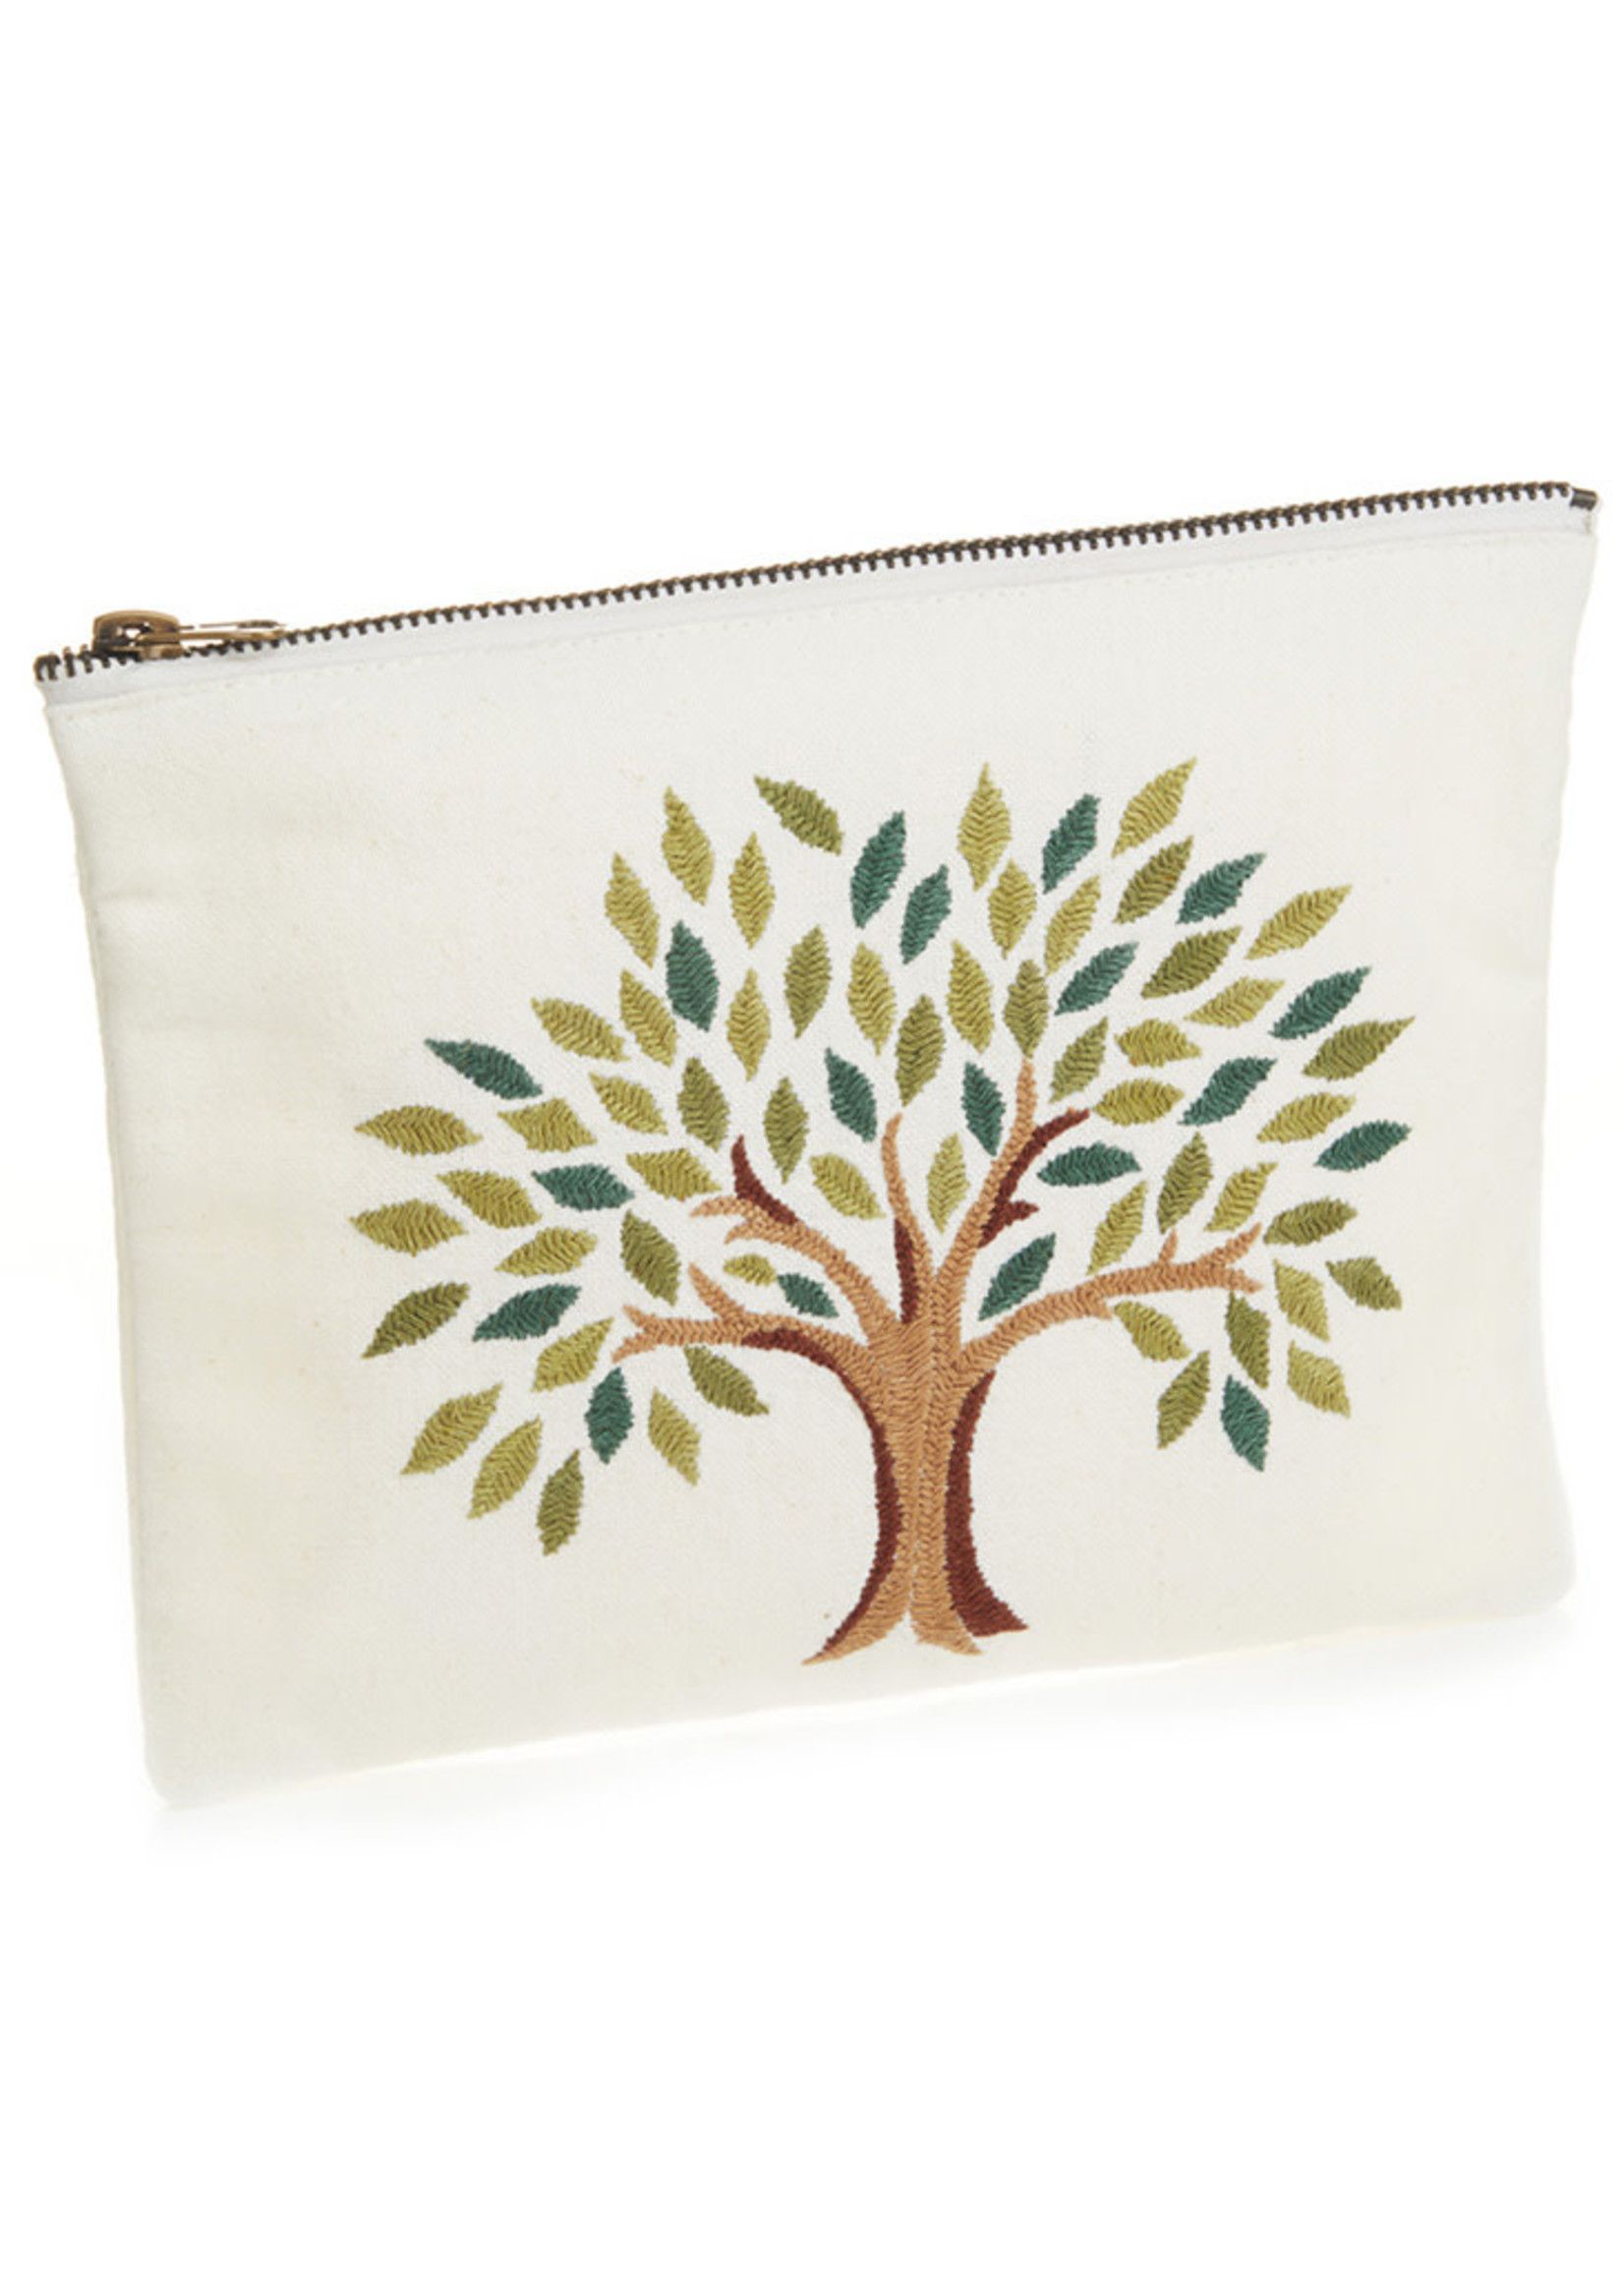 Tree of Life Zipper Pouch